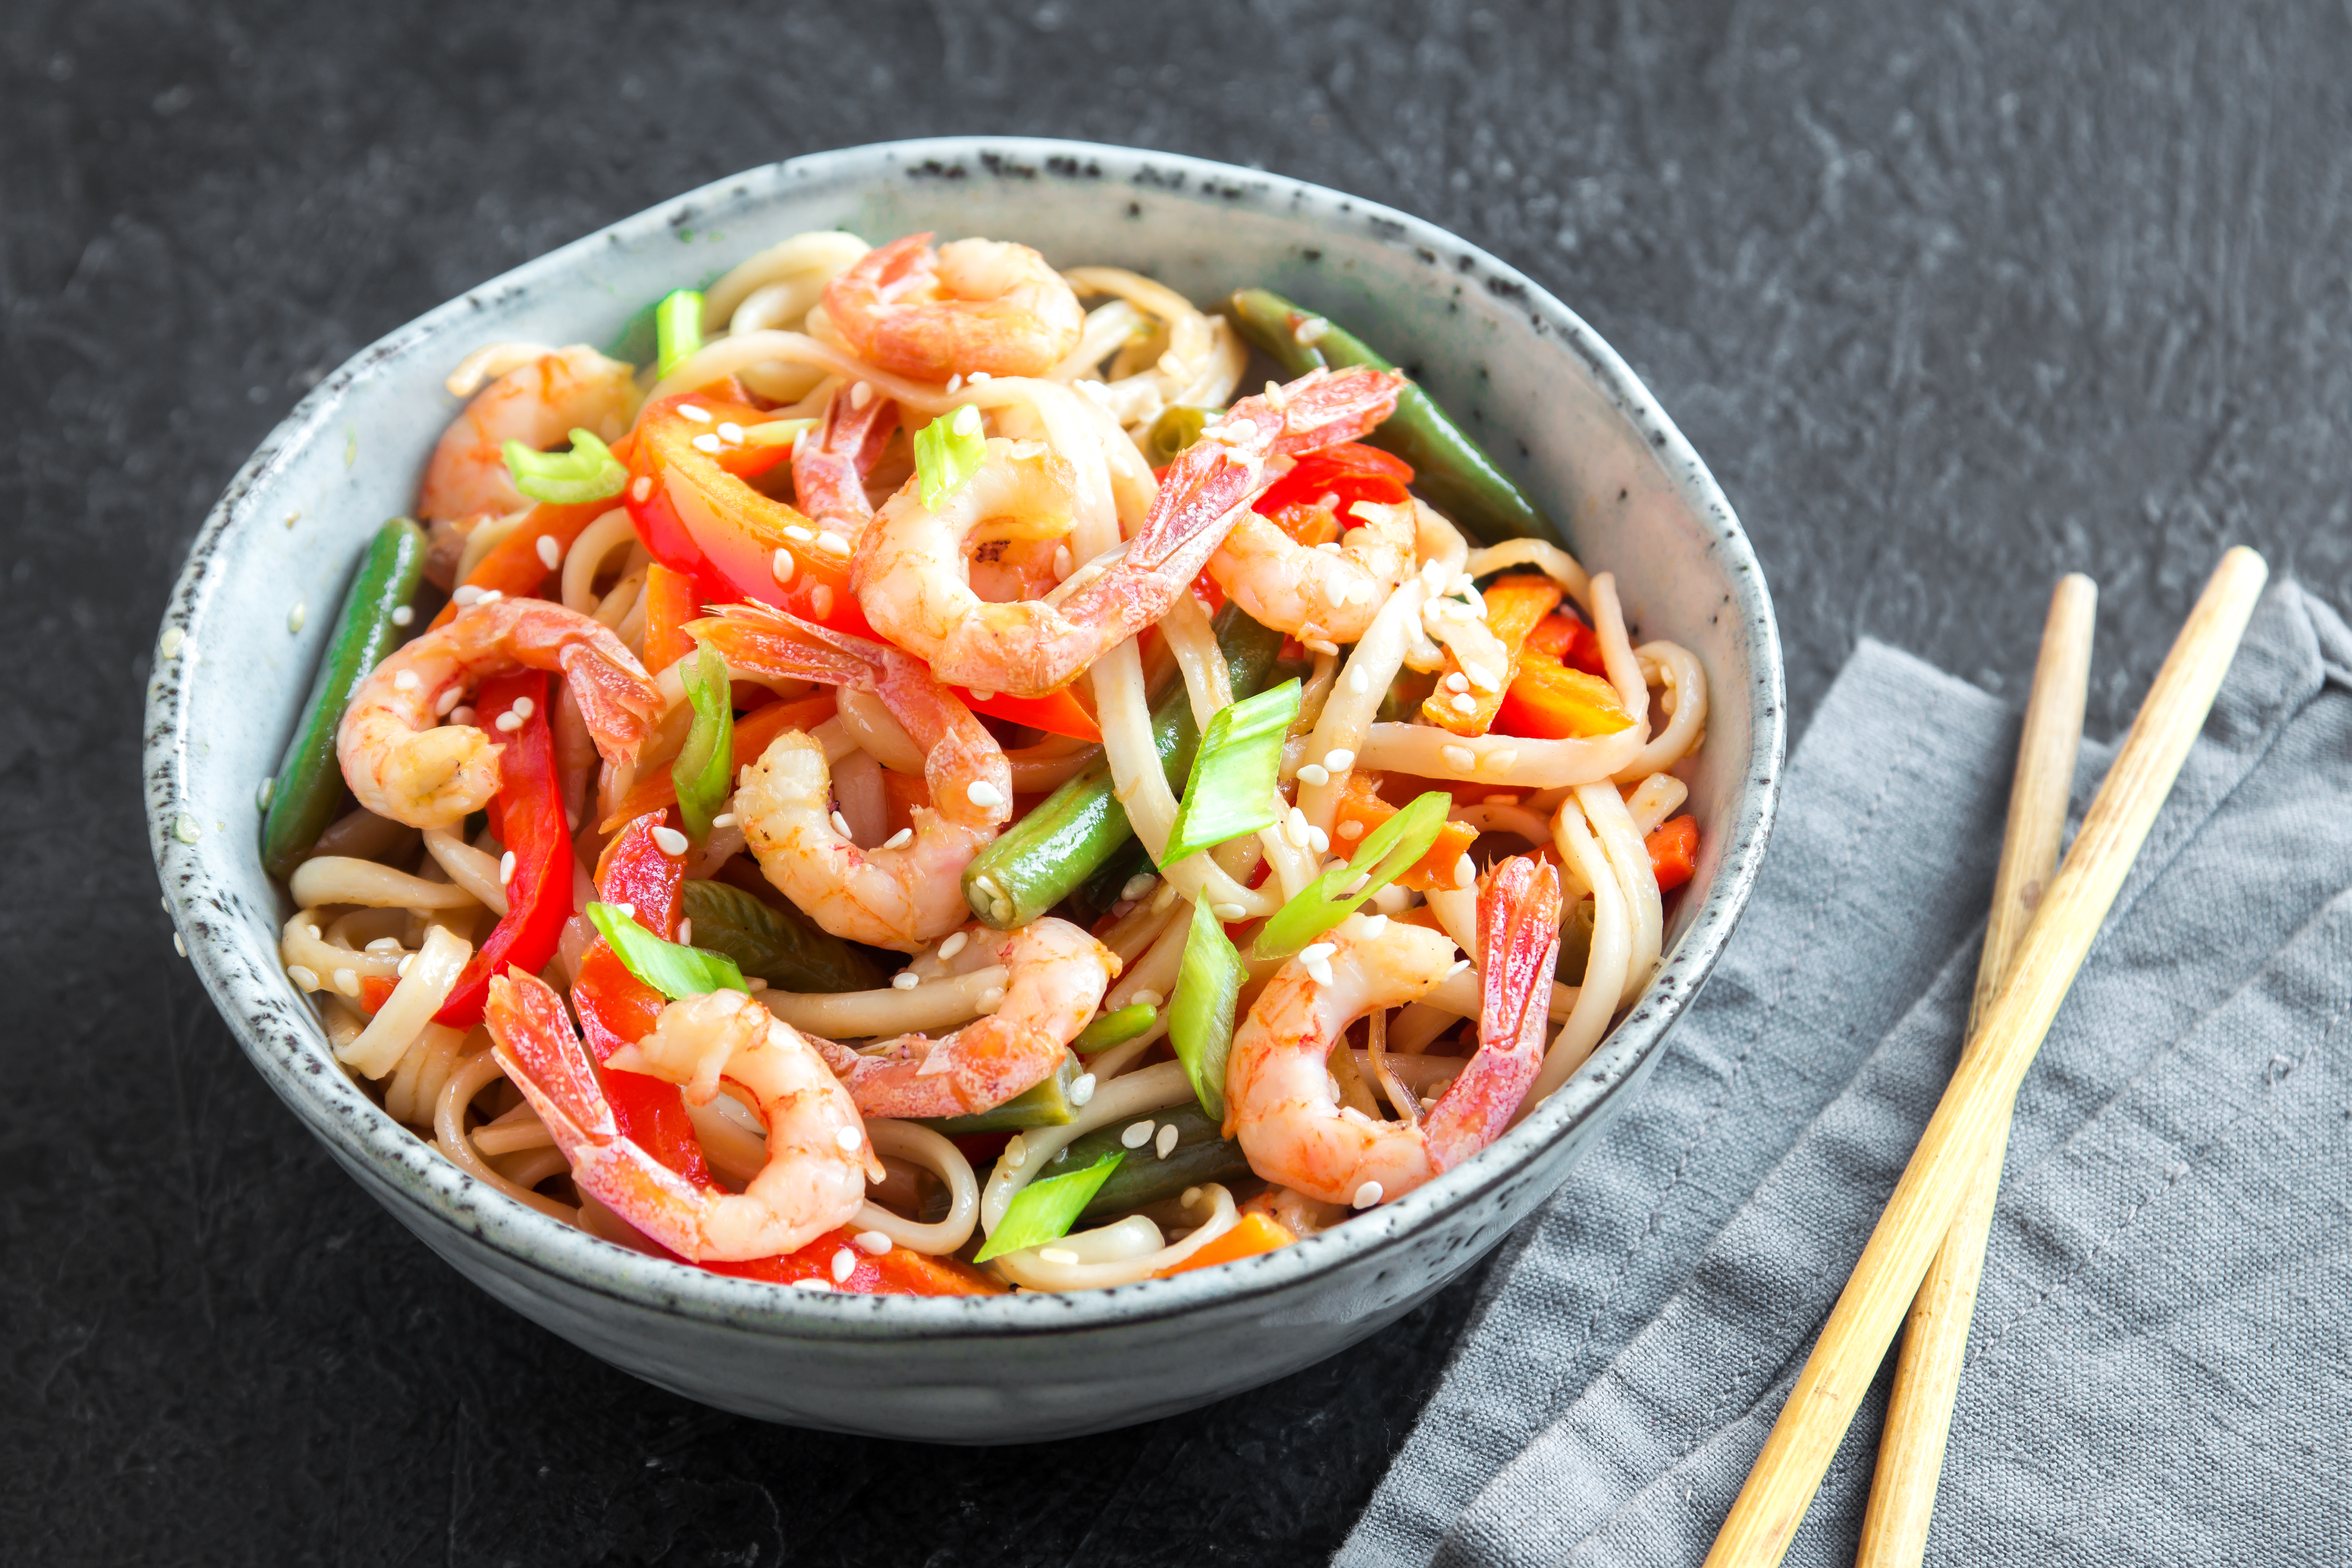 How To Choose Healthy Low Fat Options When Eating Chinese